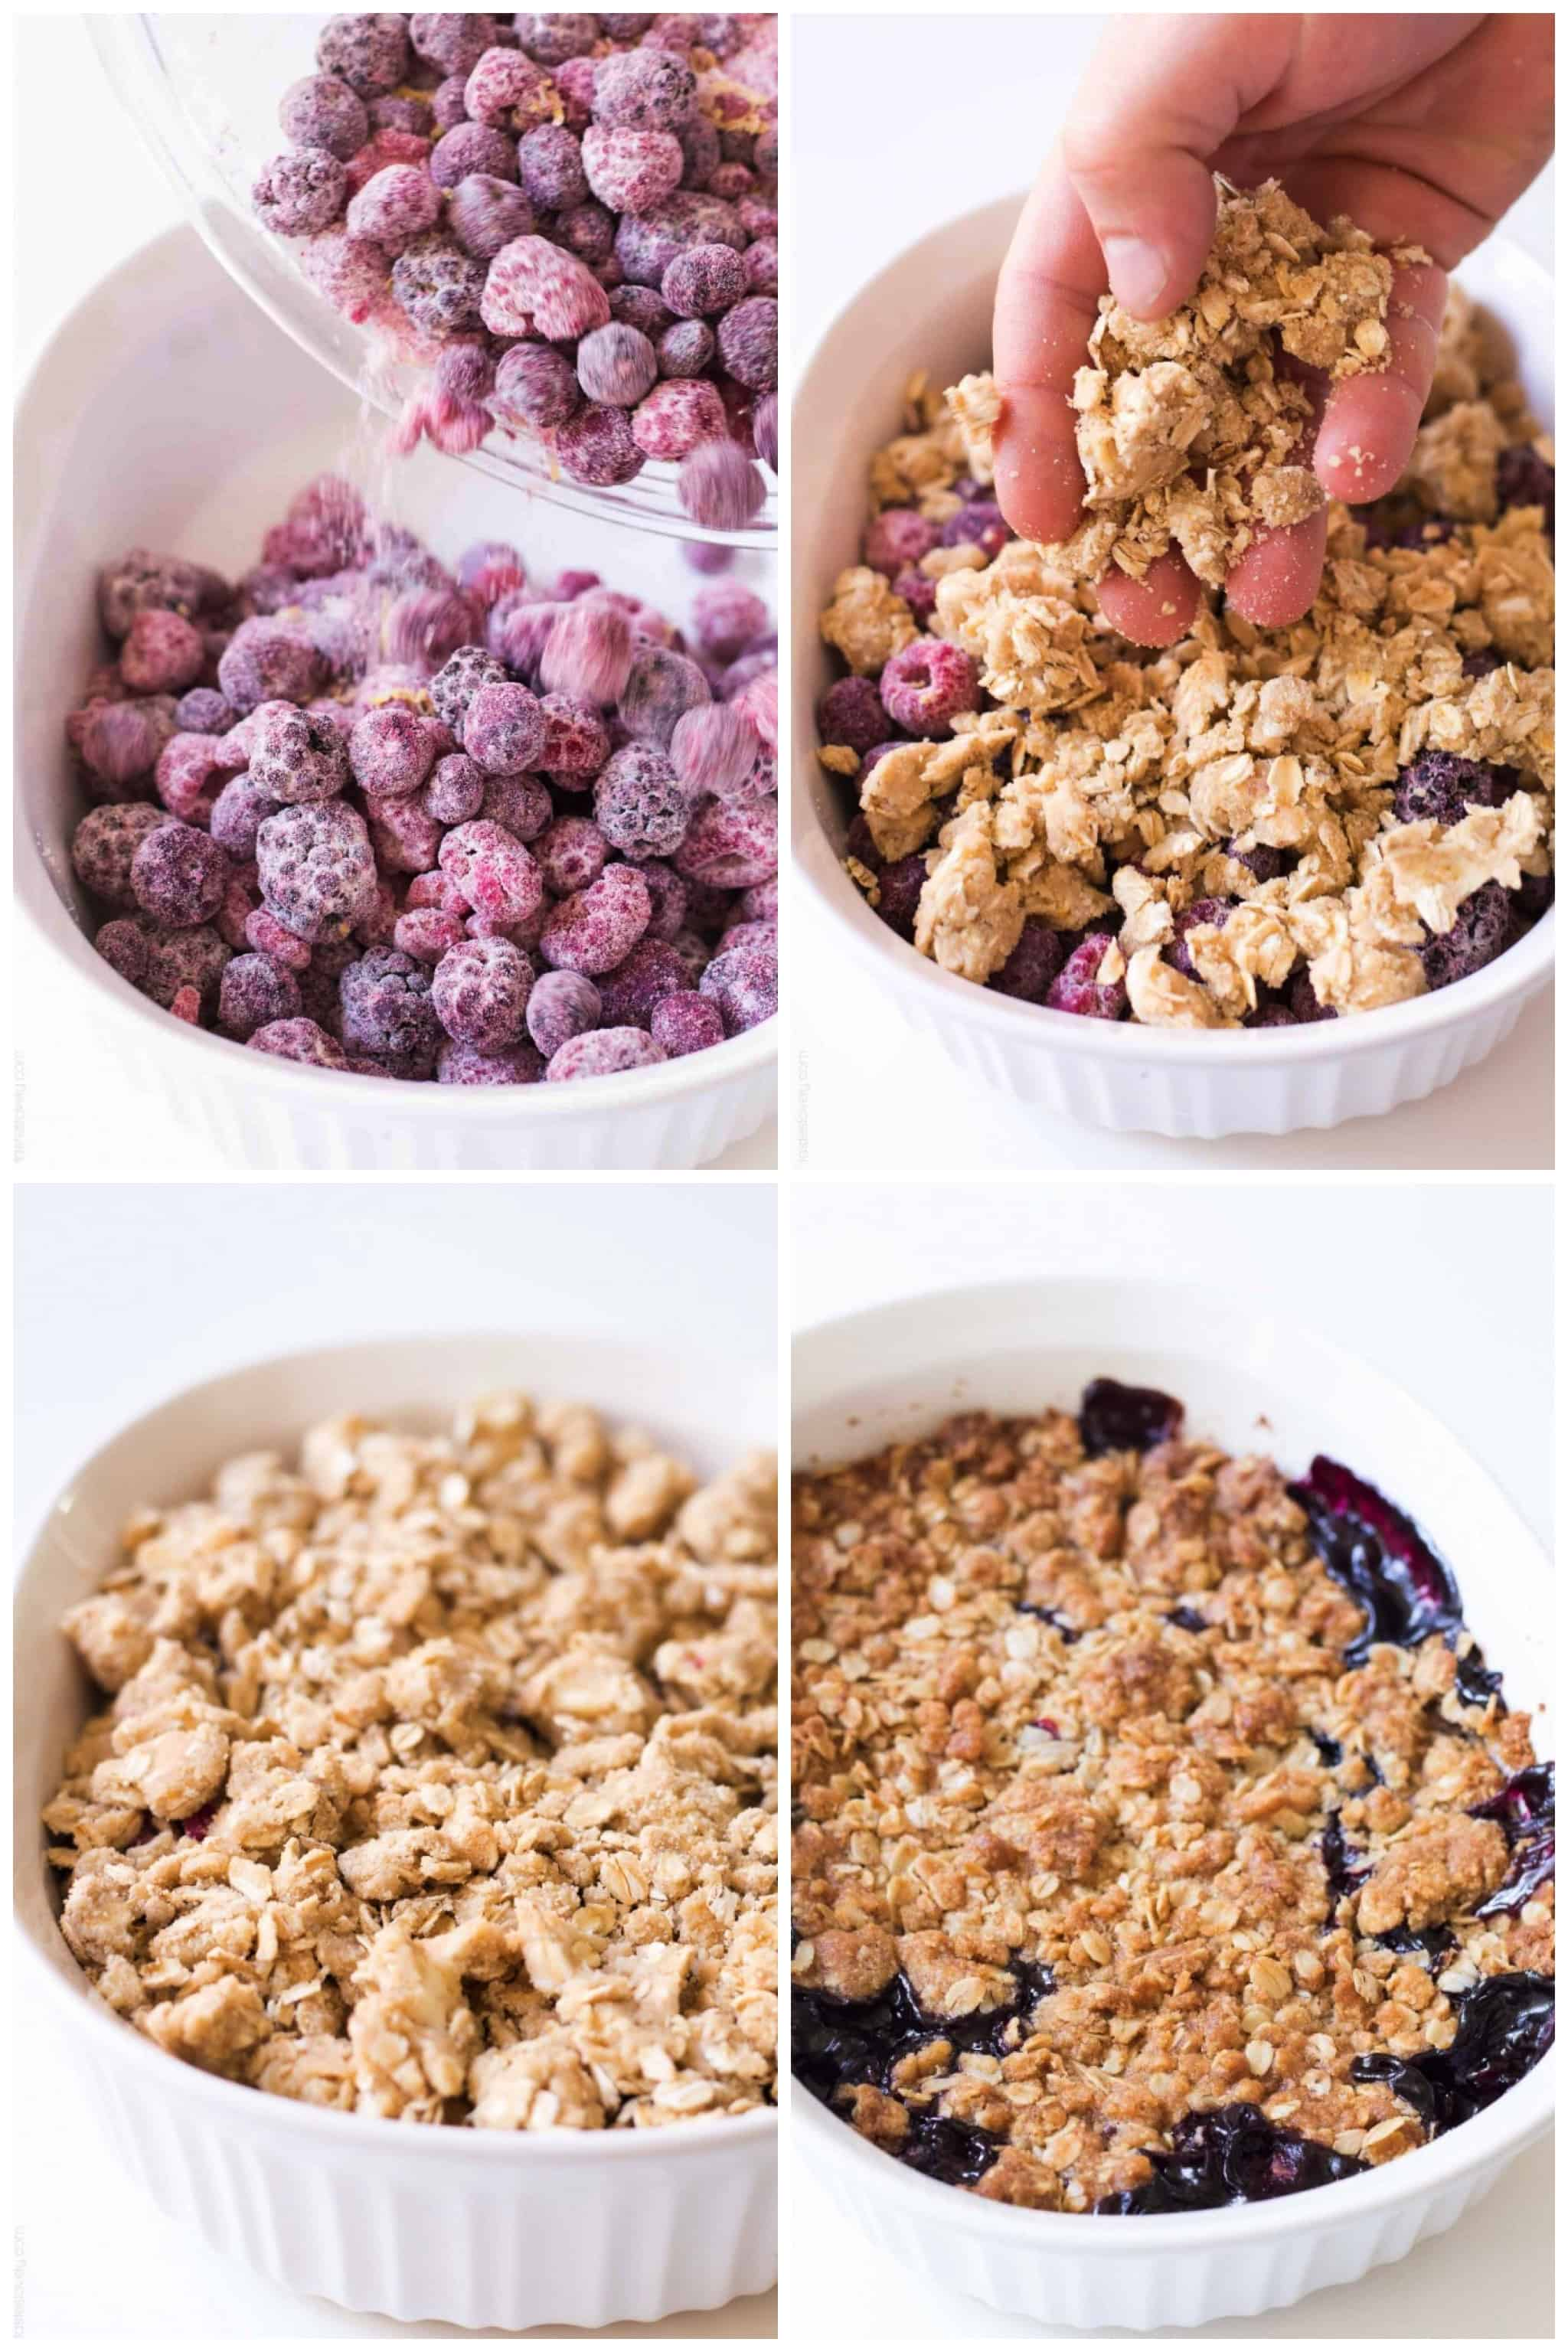 Steps of making triple berry crumble